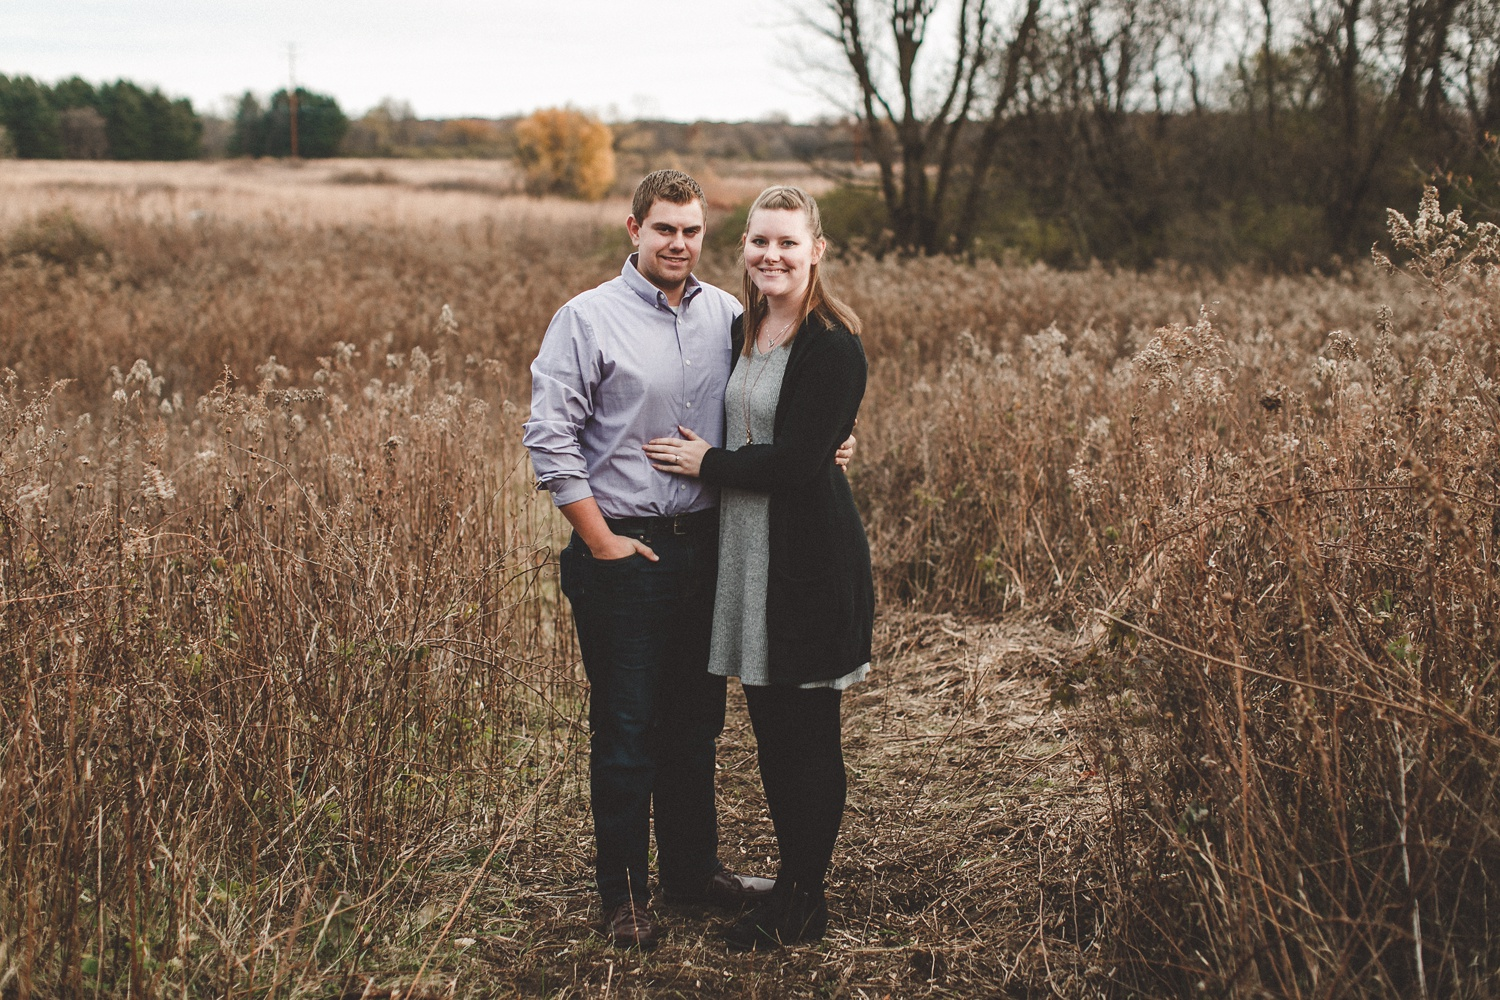 rock_cut_state_park_rockford_IL_engagement_photographer_0001.jpg